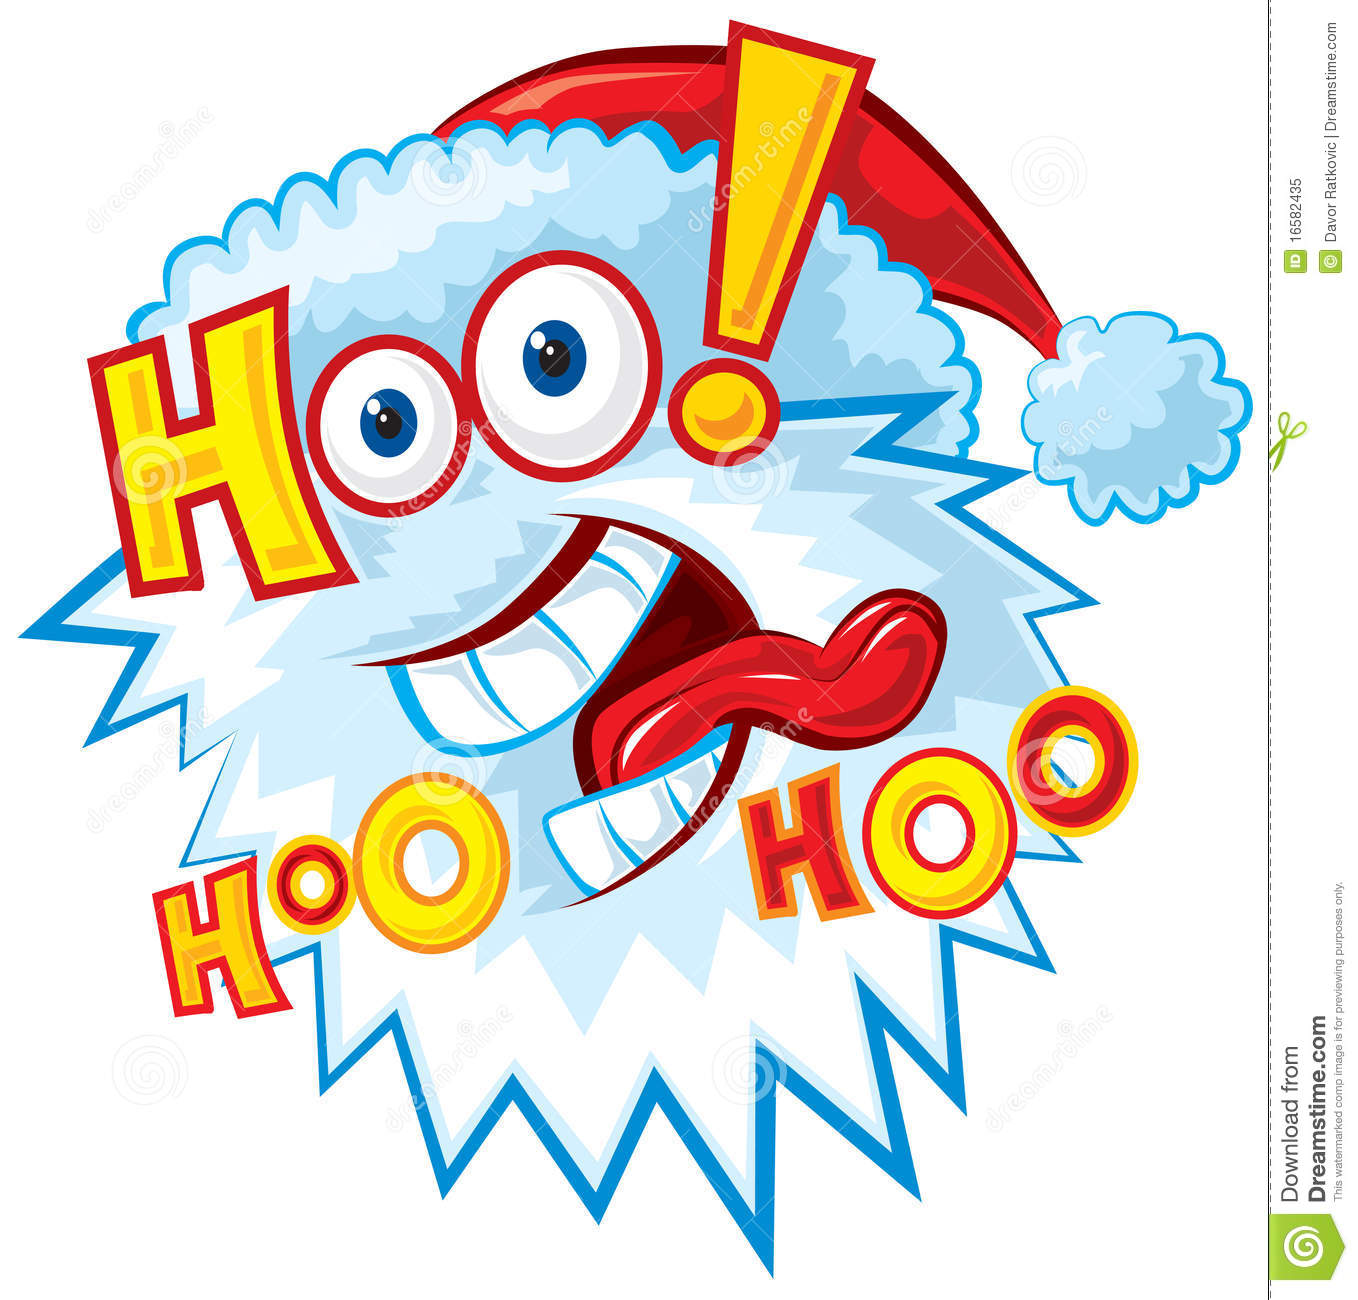 Crazy Santa Hoo Hoo Hoo Stock Vector Image Of Cartoon